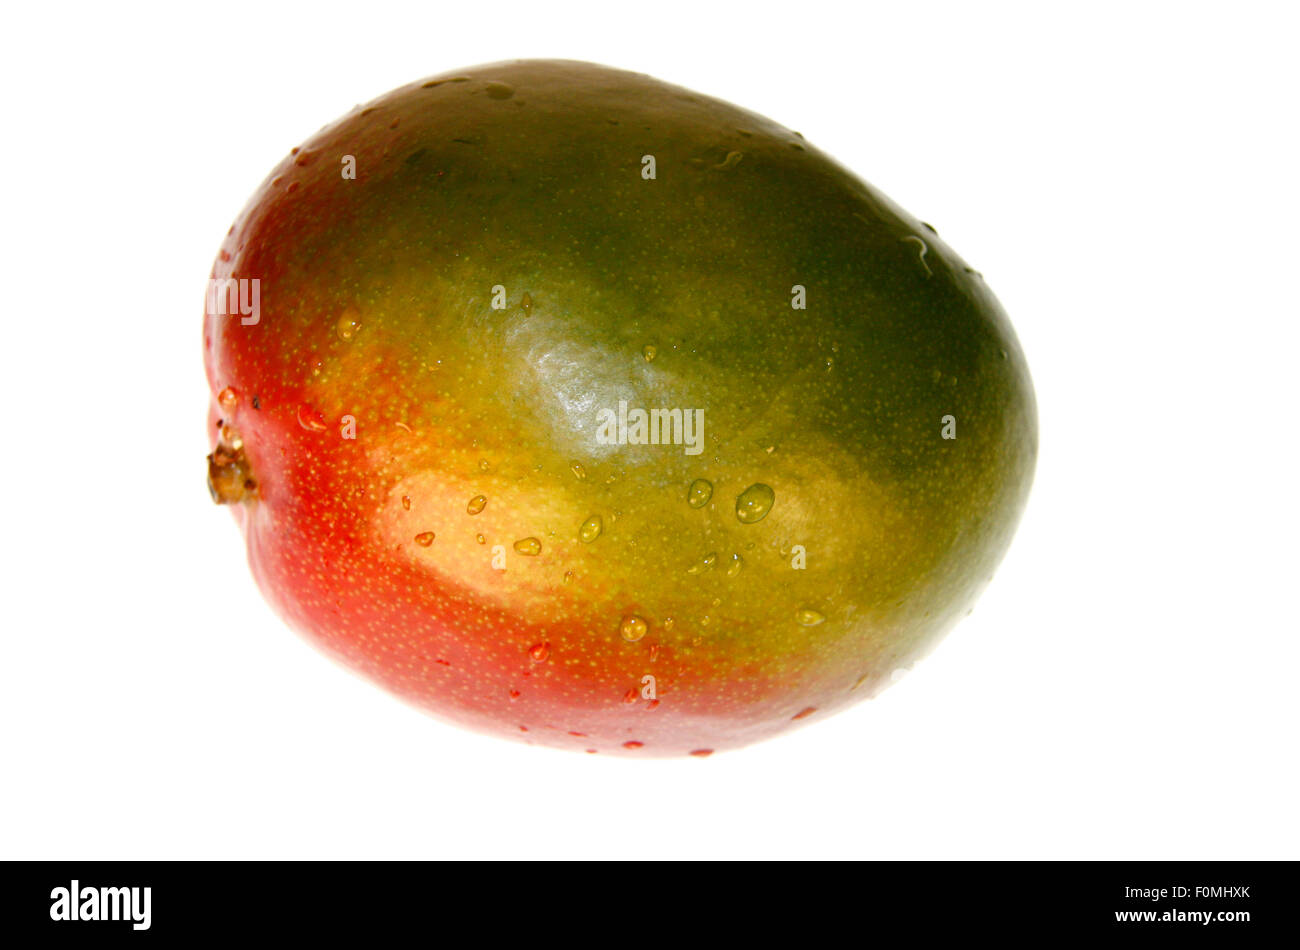 Mango - Symbolbild Nahrungsmittel. Photo Stock